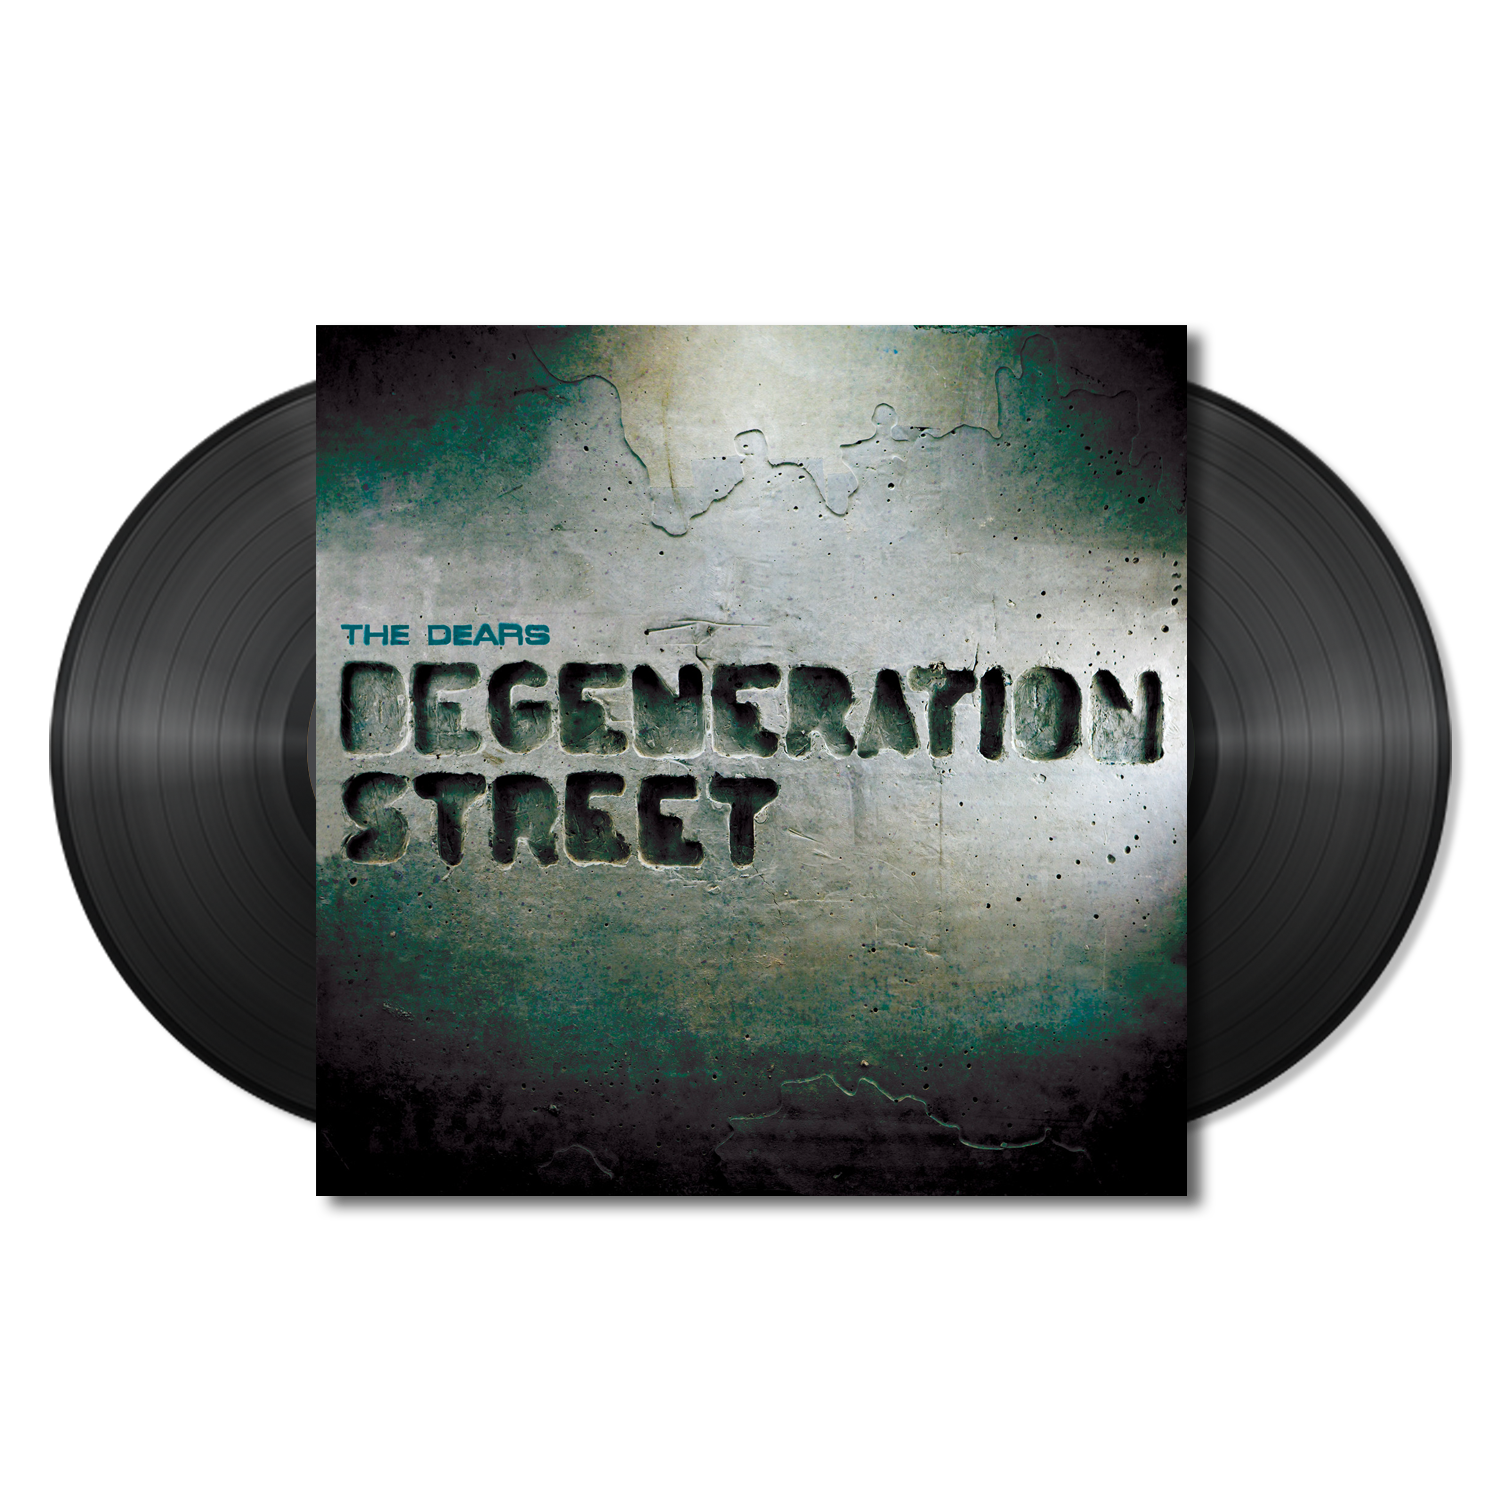 The Dears - Degeneration Street - 2 x Black LP